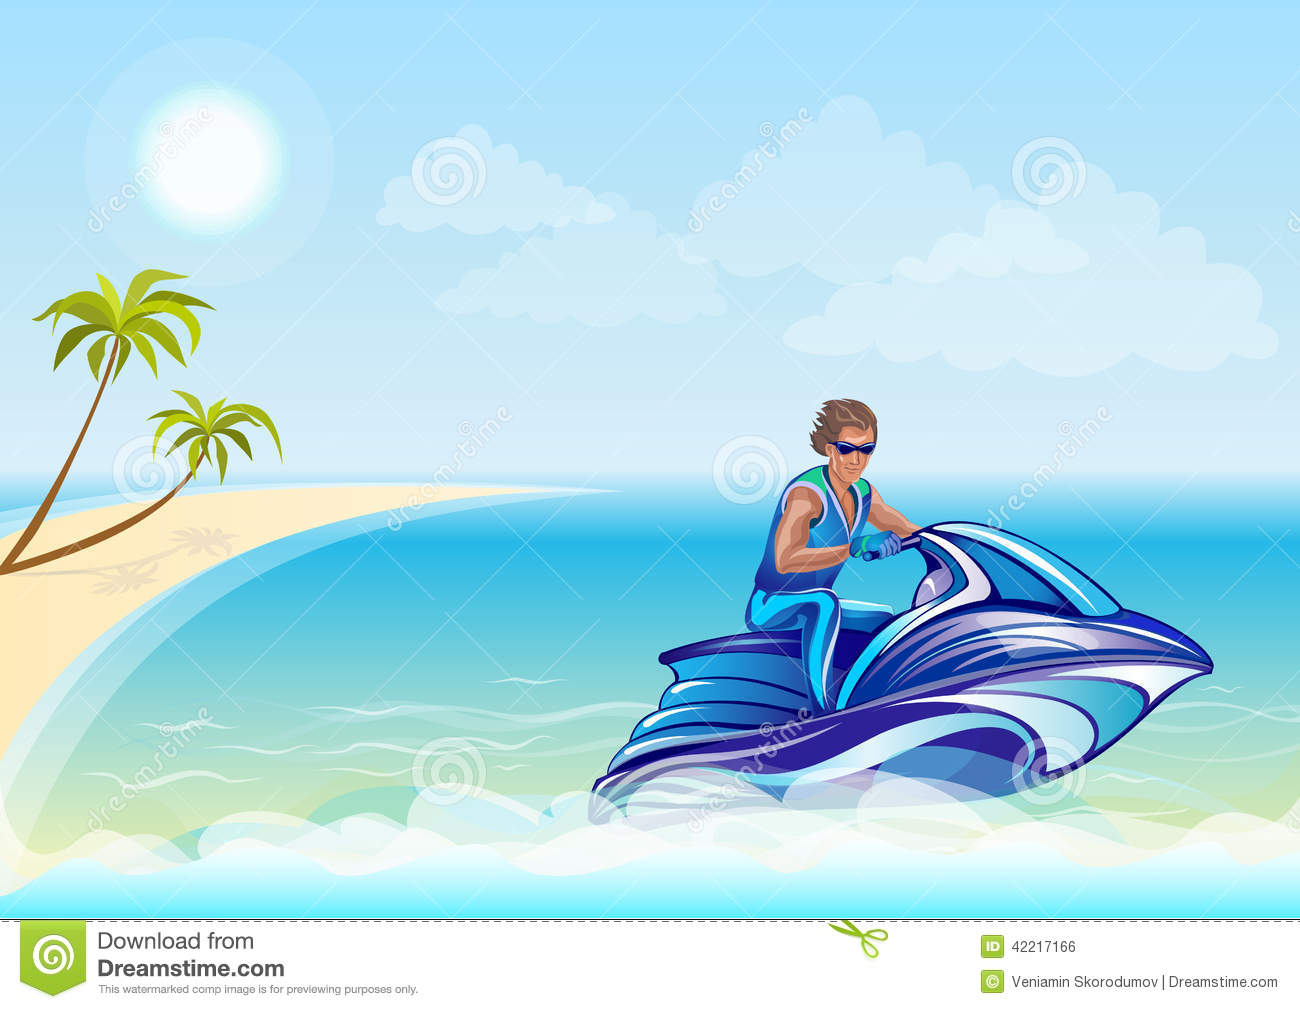 Man Sitting Water Scooter Jet Ski Vector Illustration Background Beach Palm Trees Congratulations Images Stock Photos Vectors